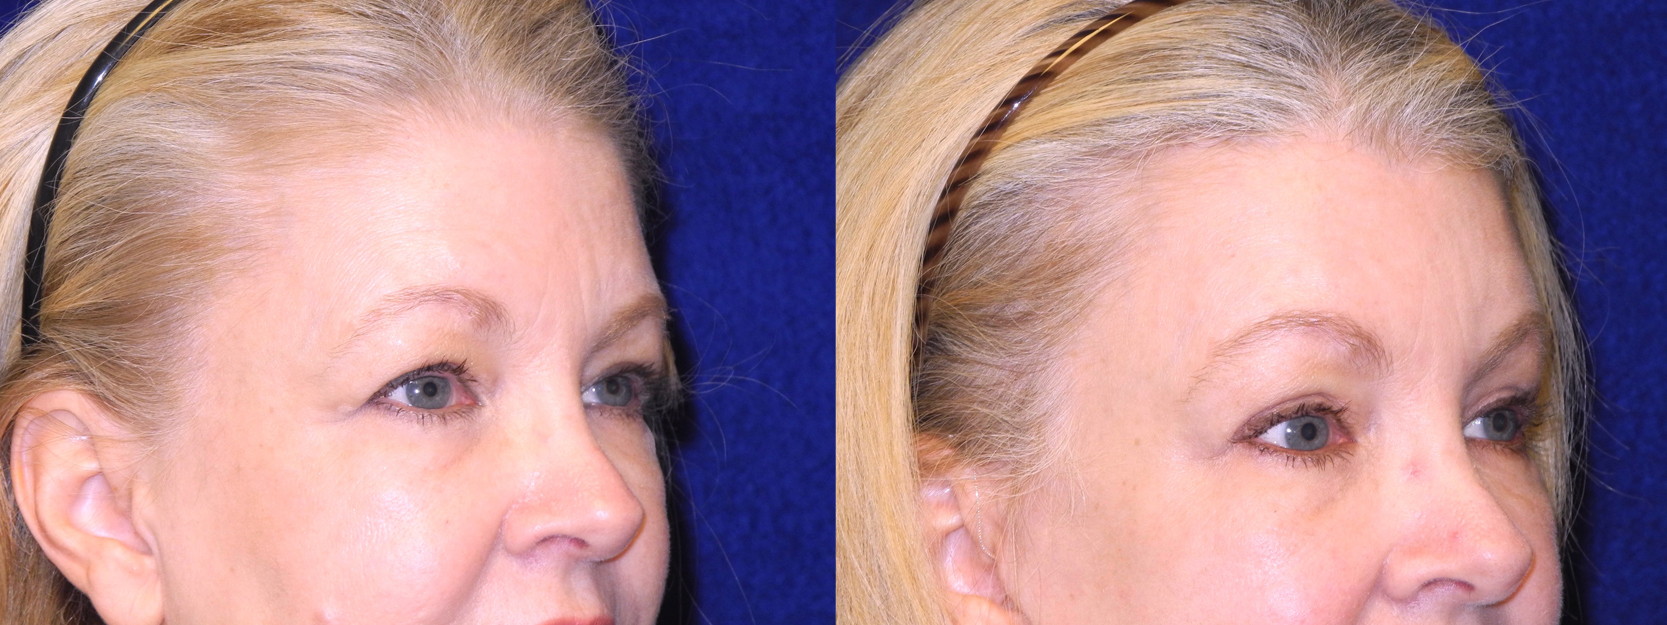 Right 3/4 View Close Up - Facelft, Browlift and Upper Eyelid Surgery